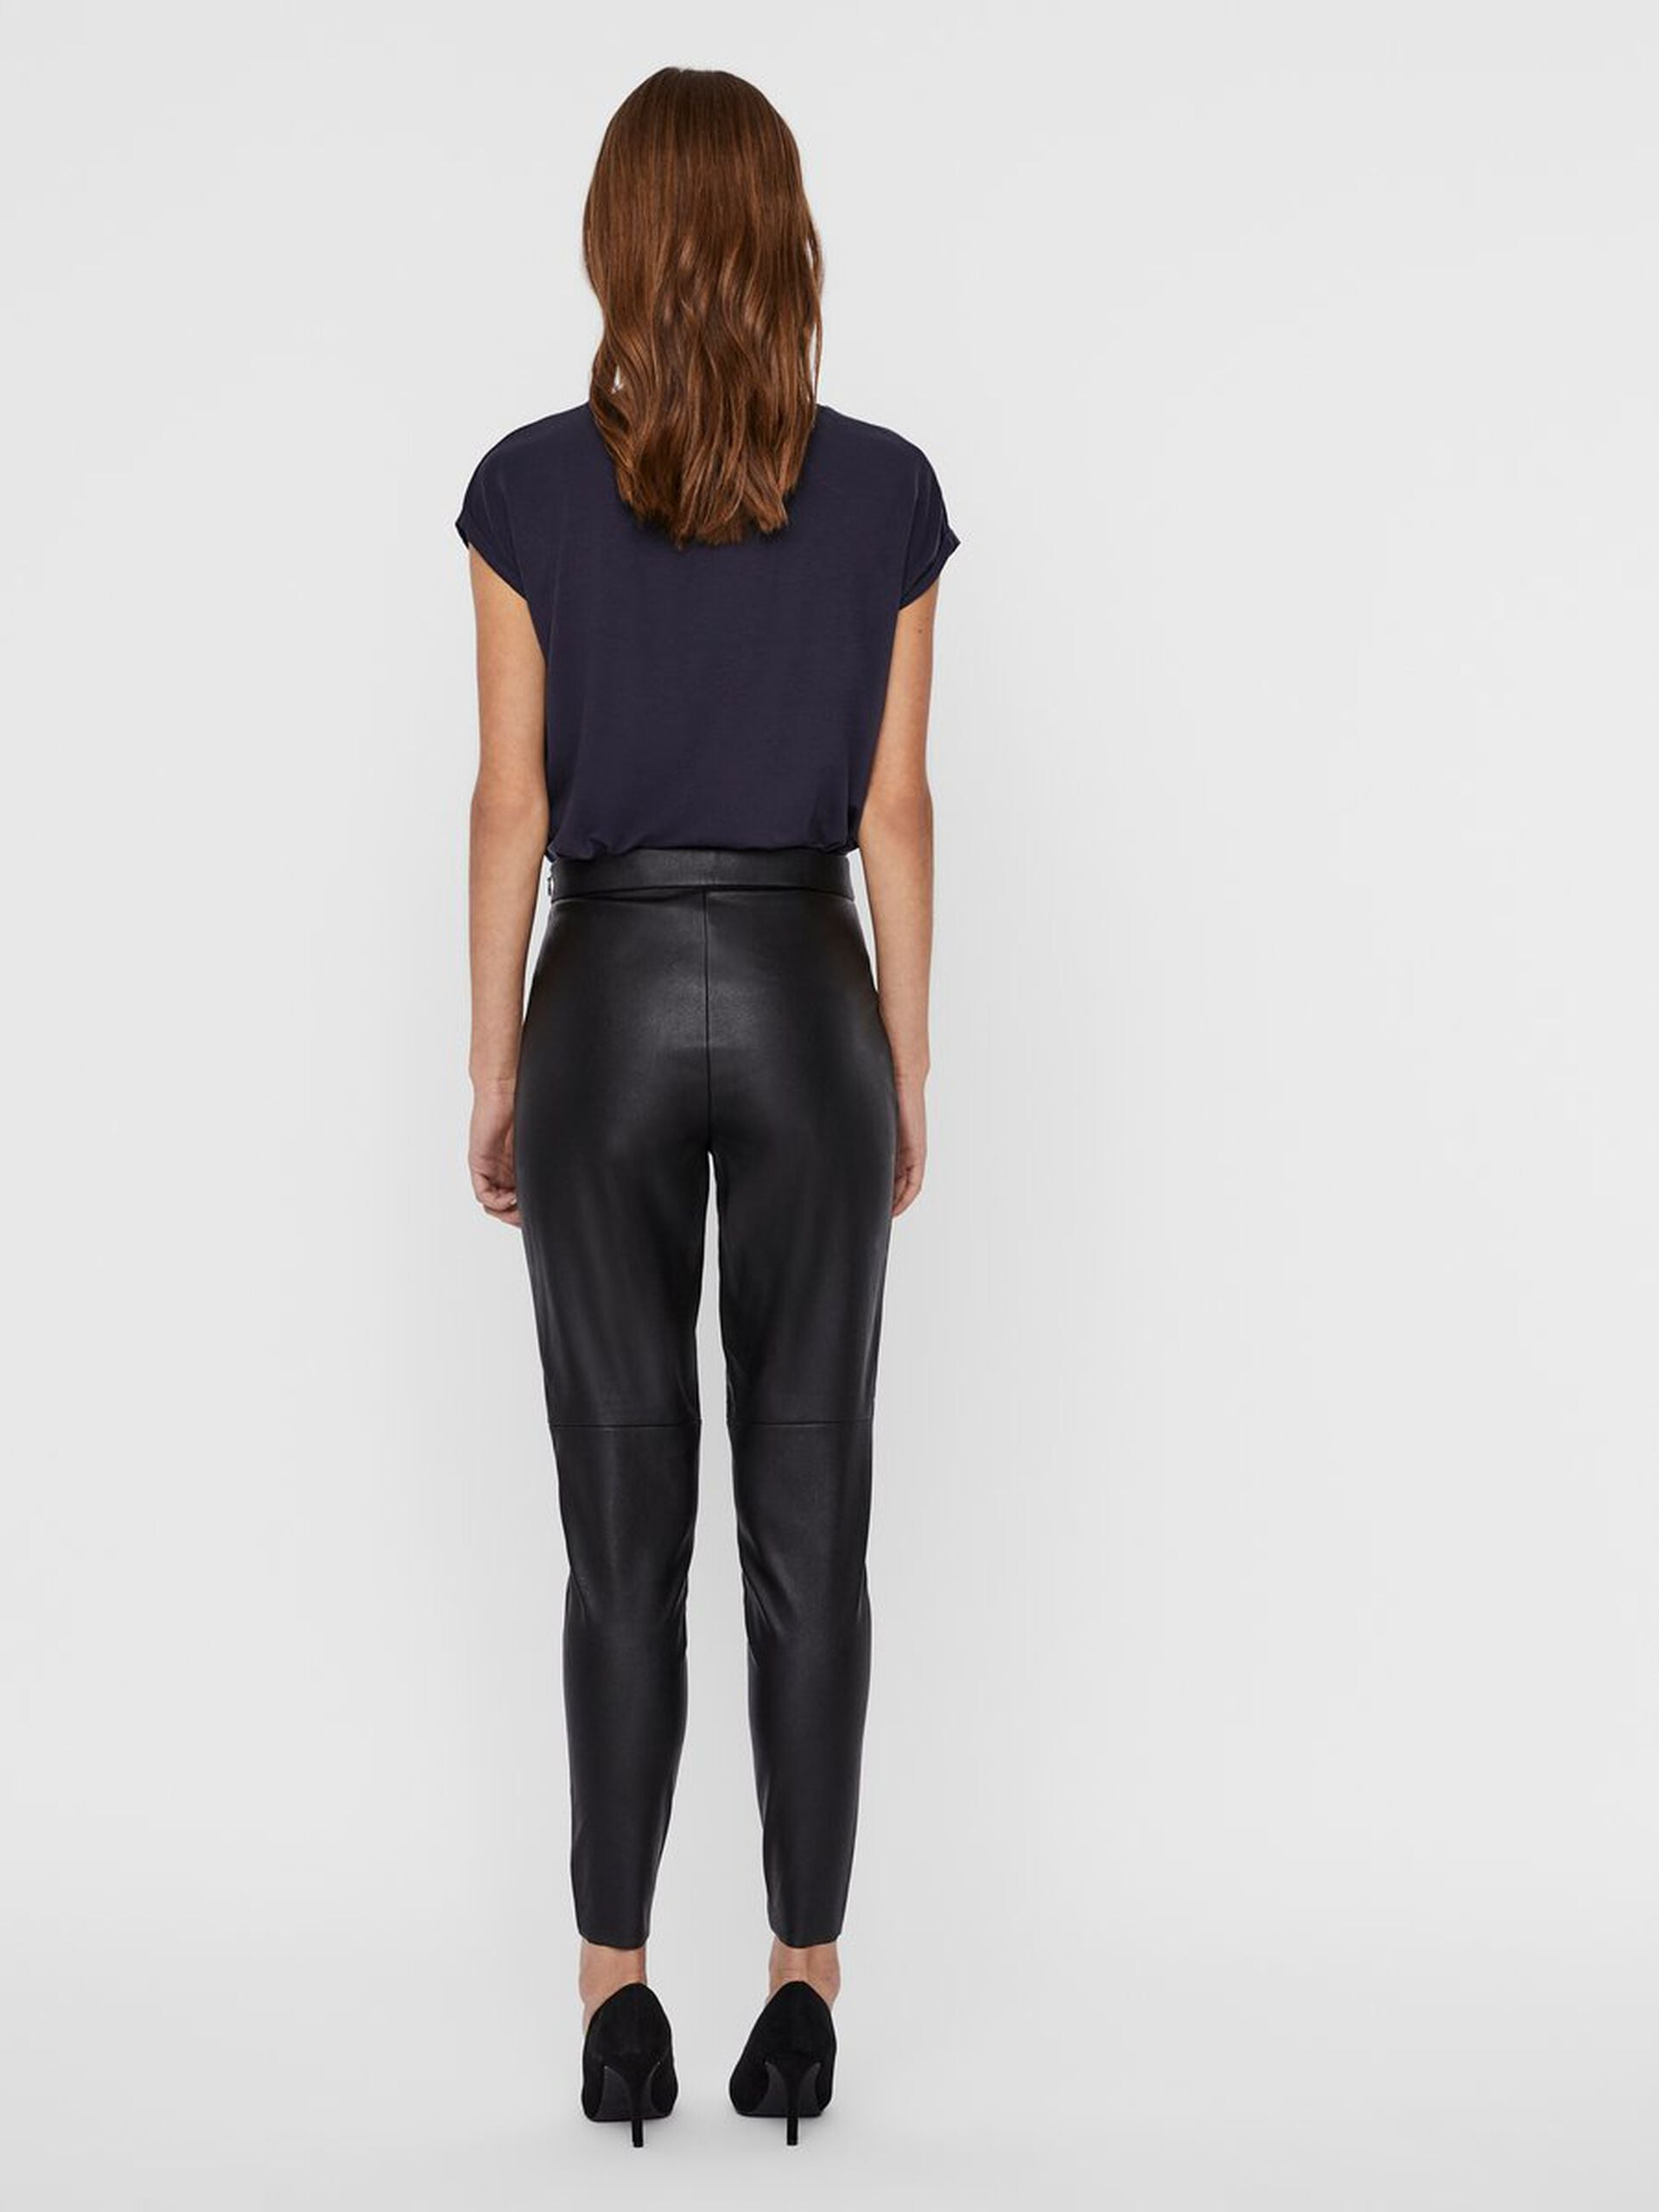 Vero Moda Janni Faux Leather Leggings- Black back profile